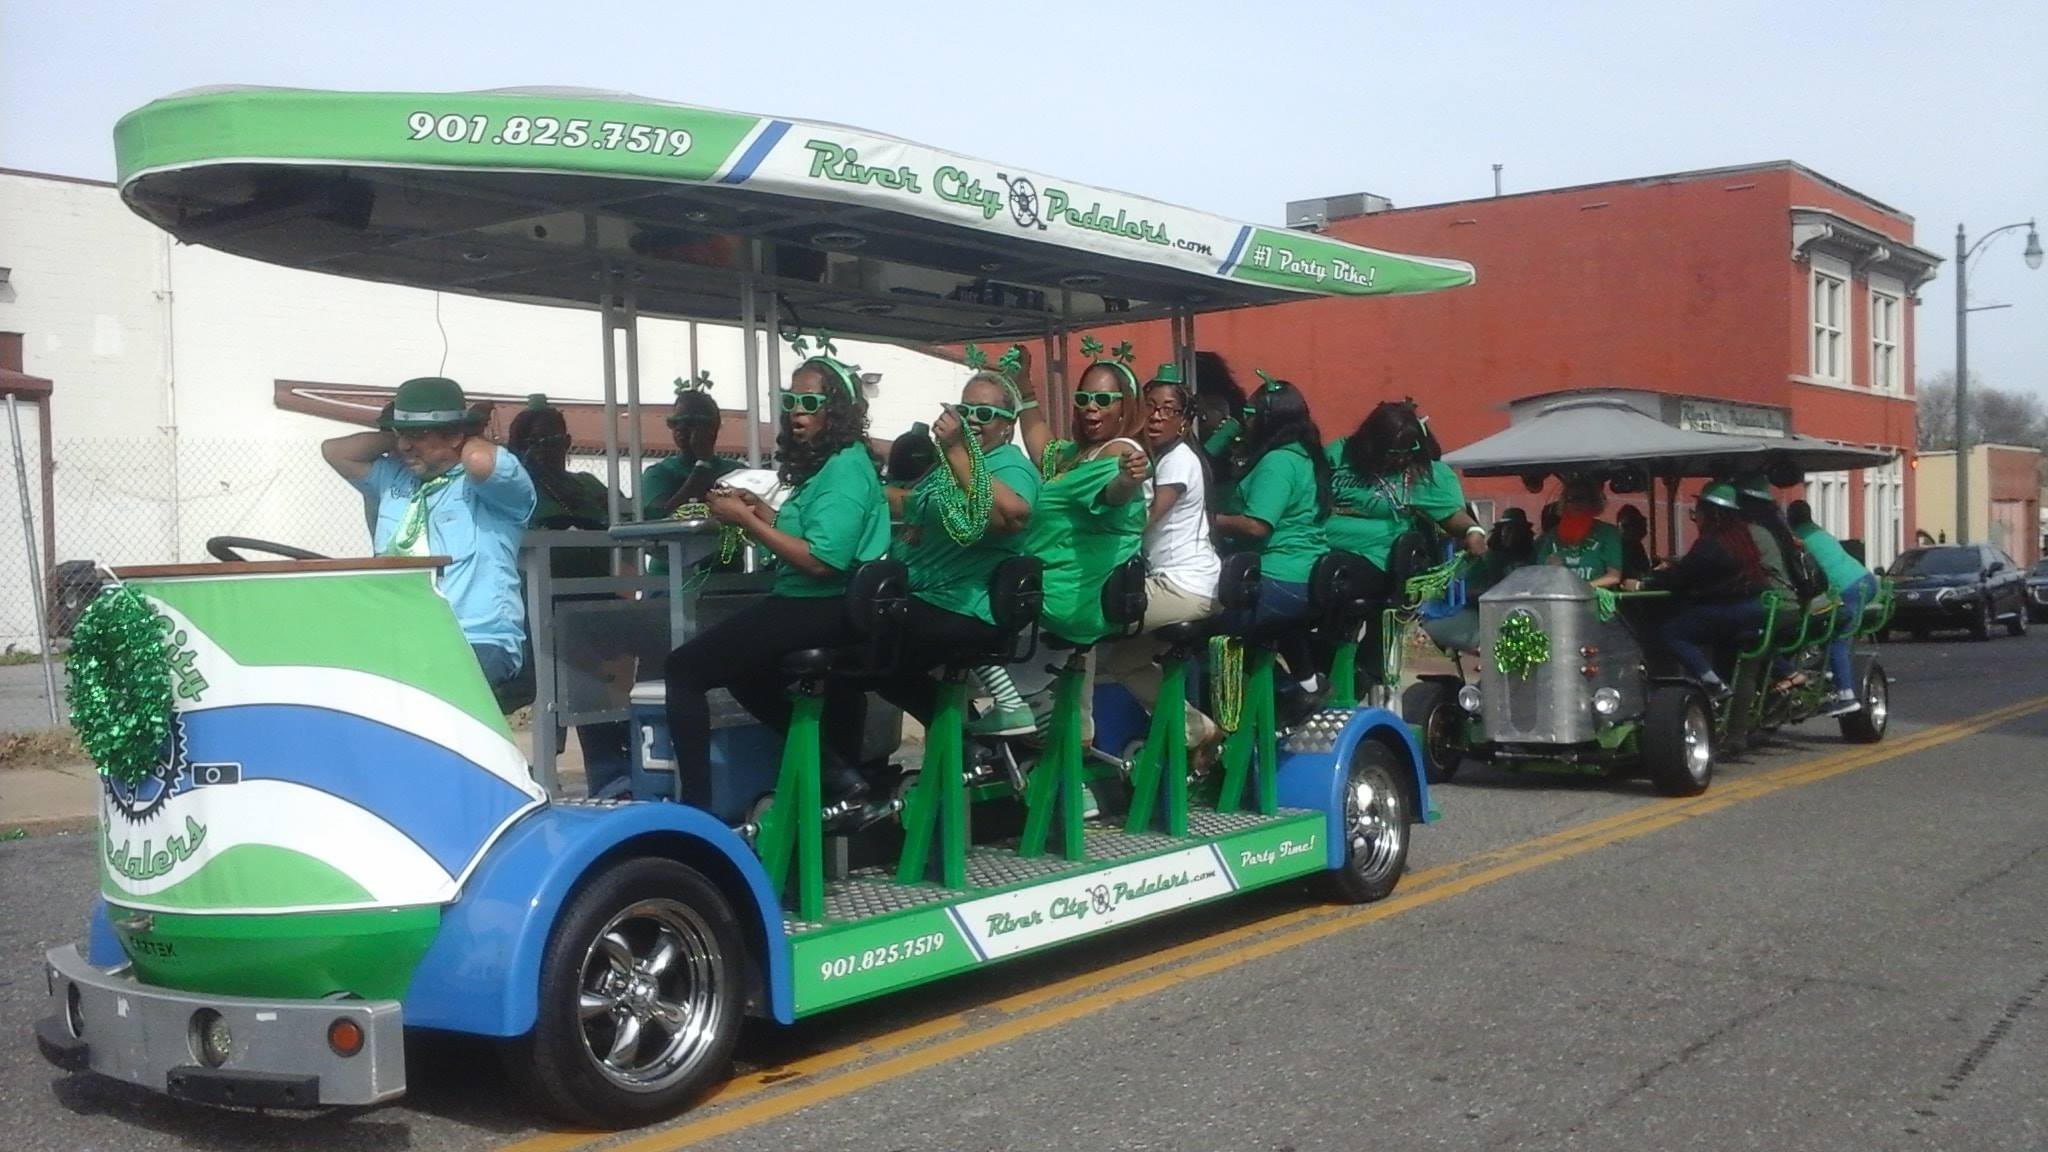 Book a ride in the Memphis St. Patrick's Day Parade!